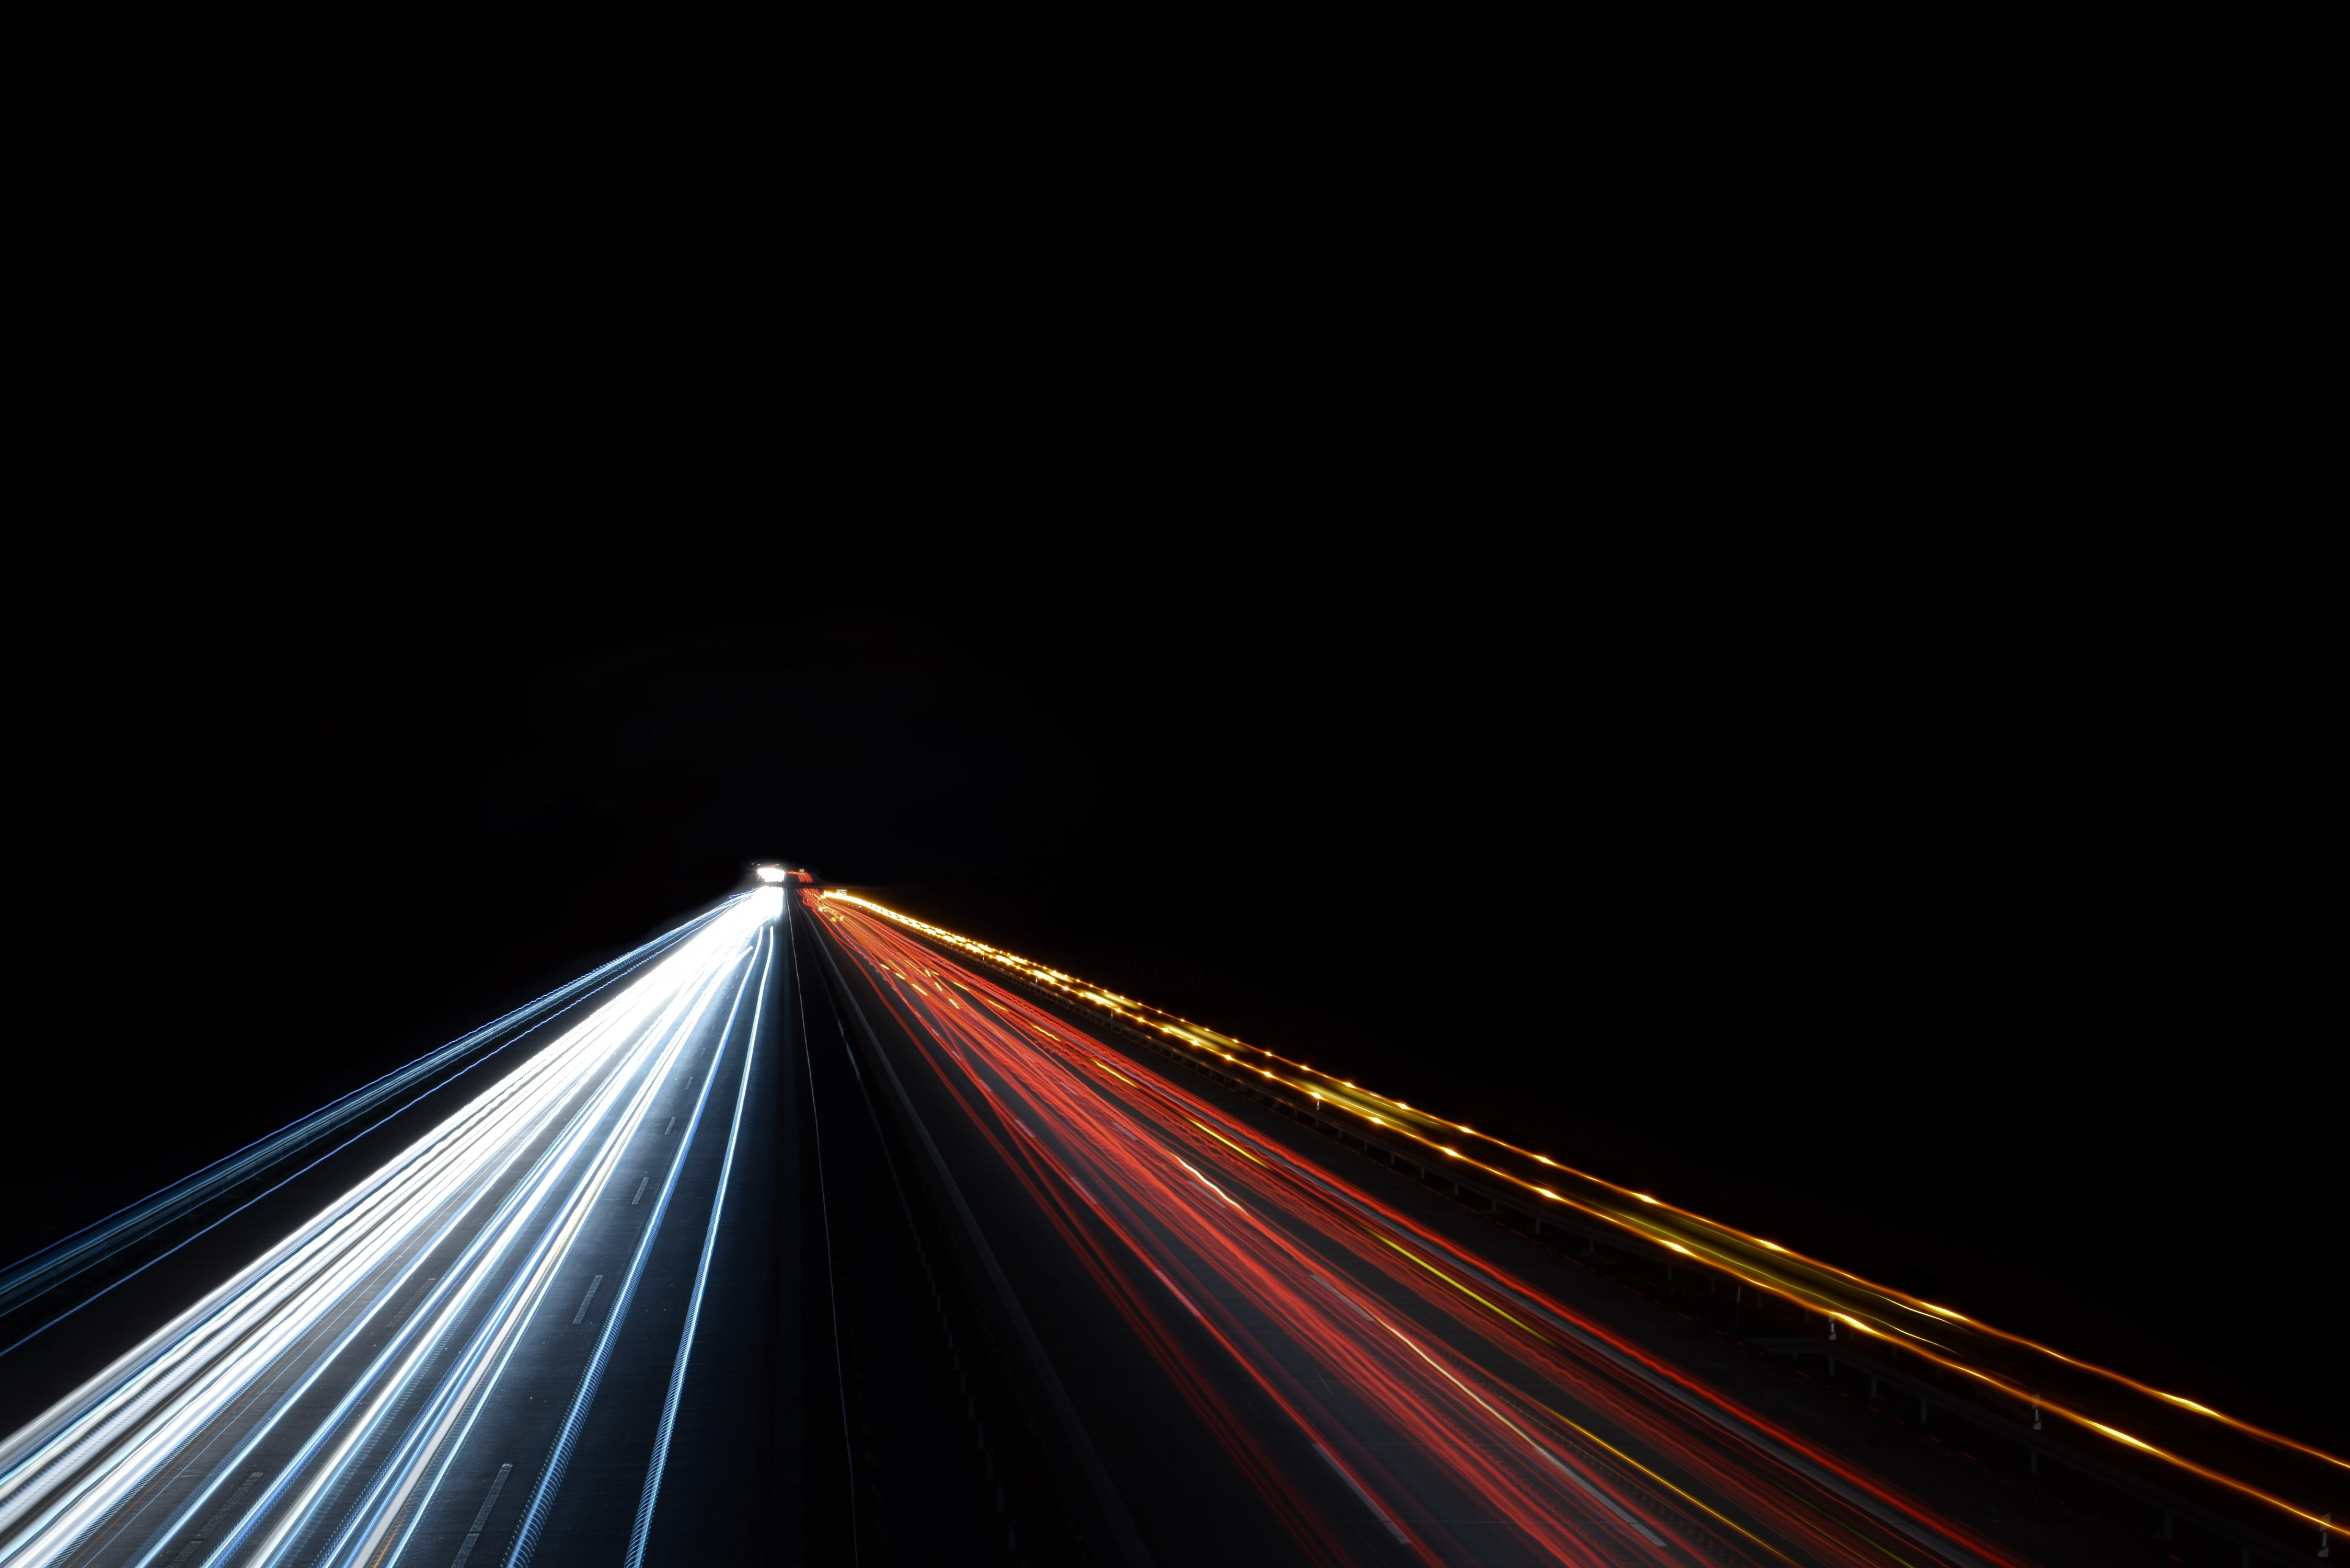 low exposure photo of cars on road during night time